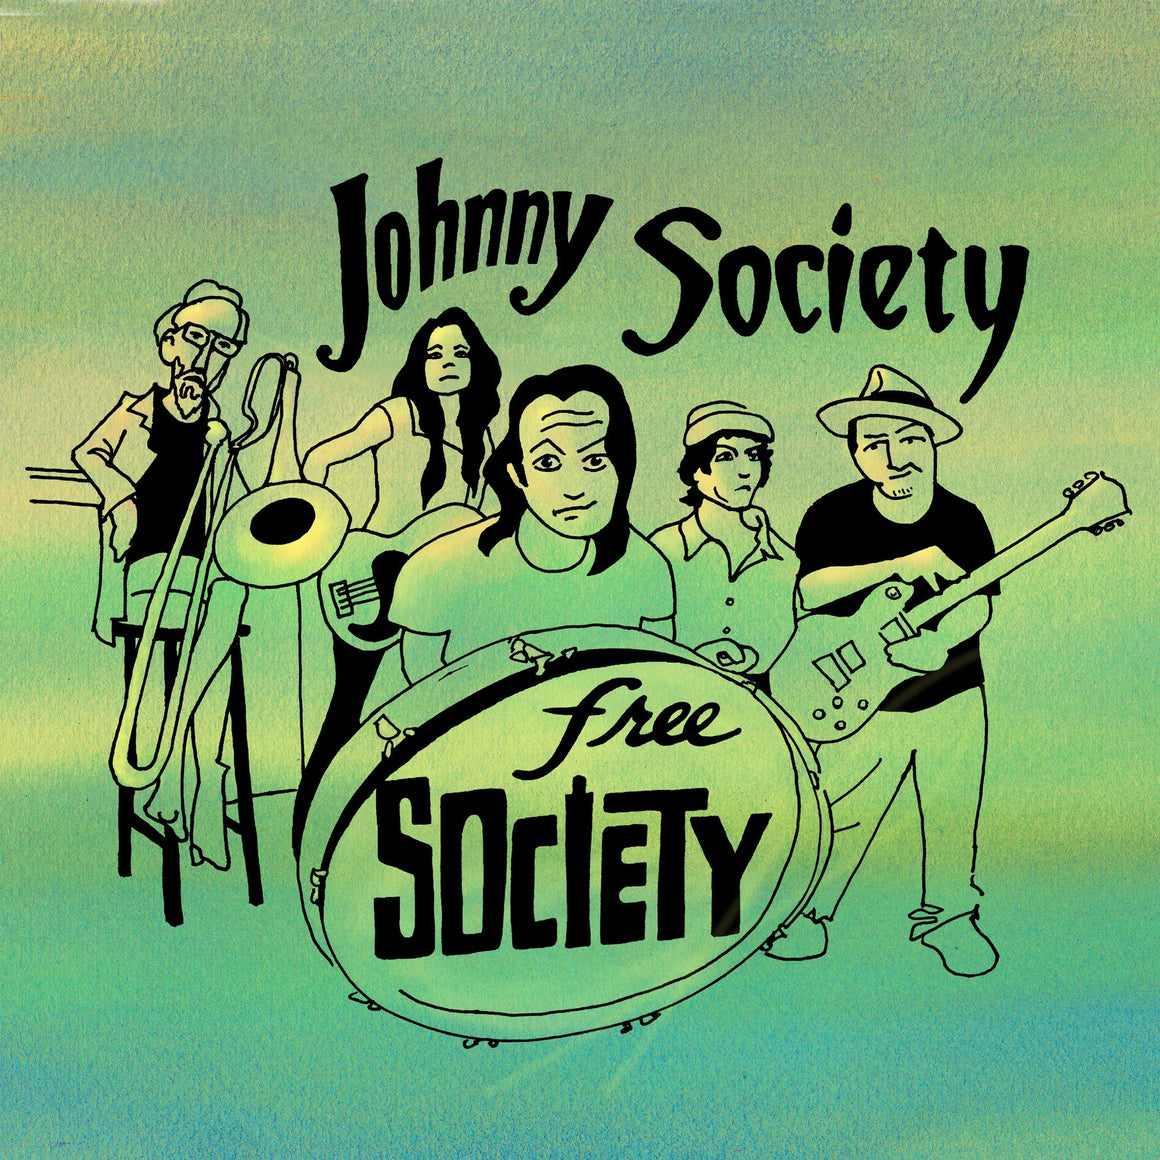 Johnny Society - Free Society